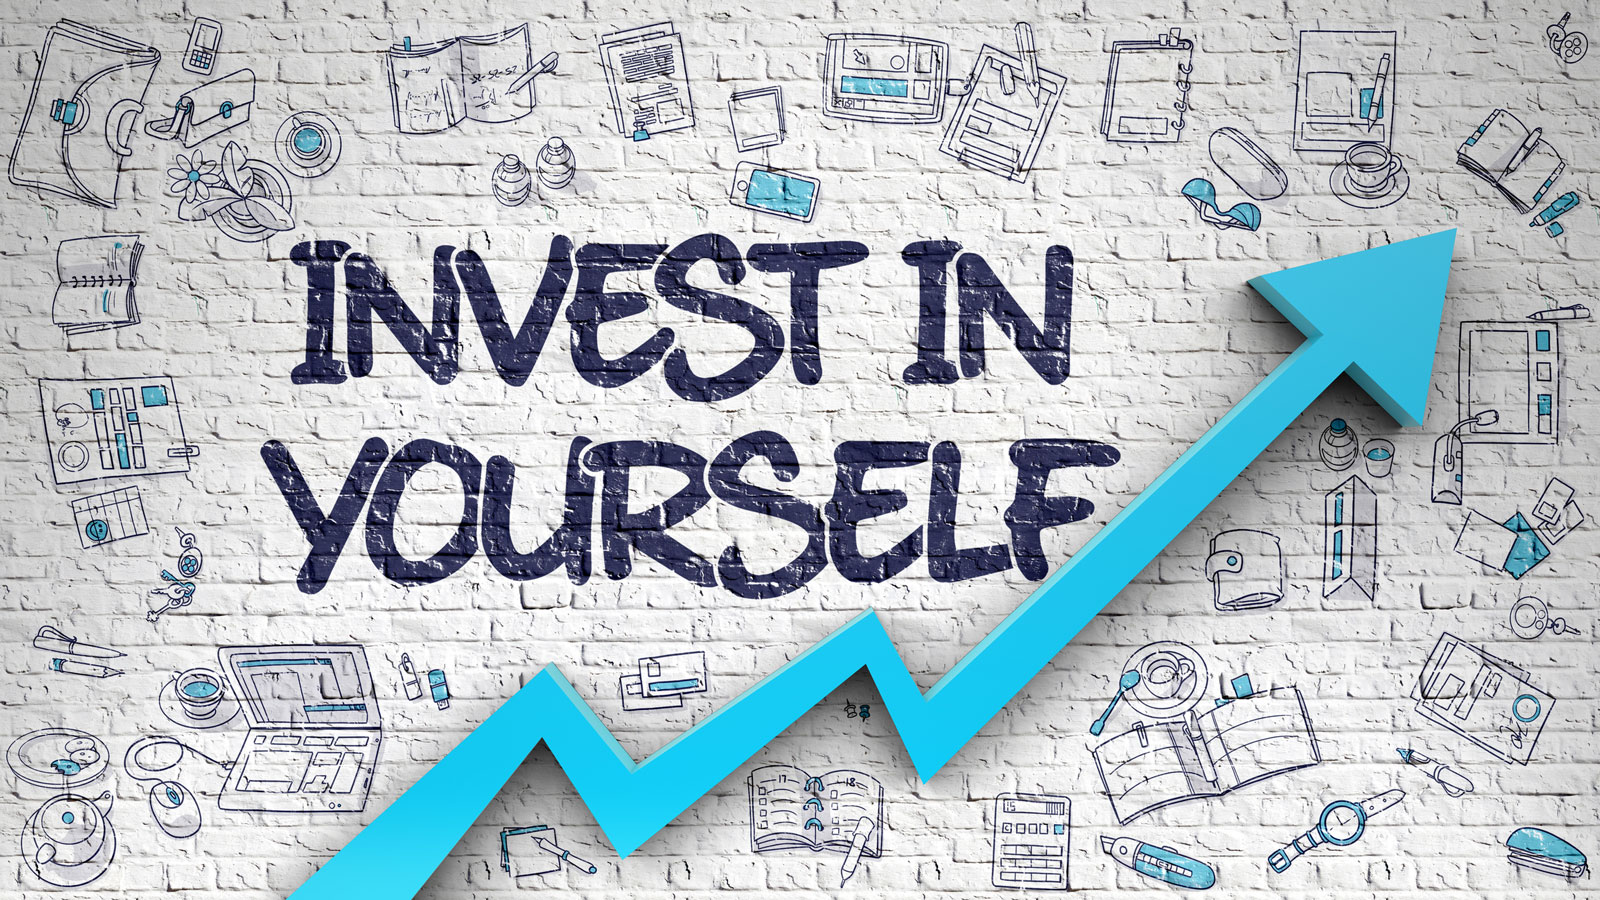 Invest in Yourself message on brick background with upward trend chart and social financial icons